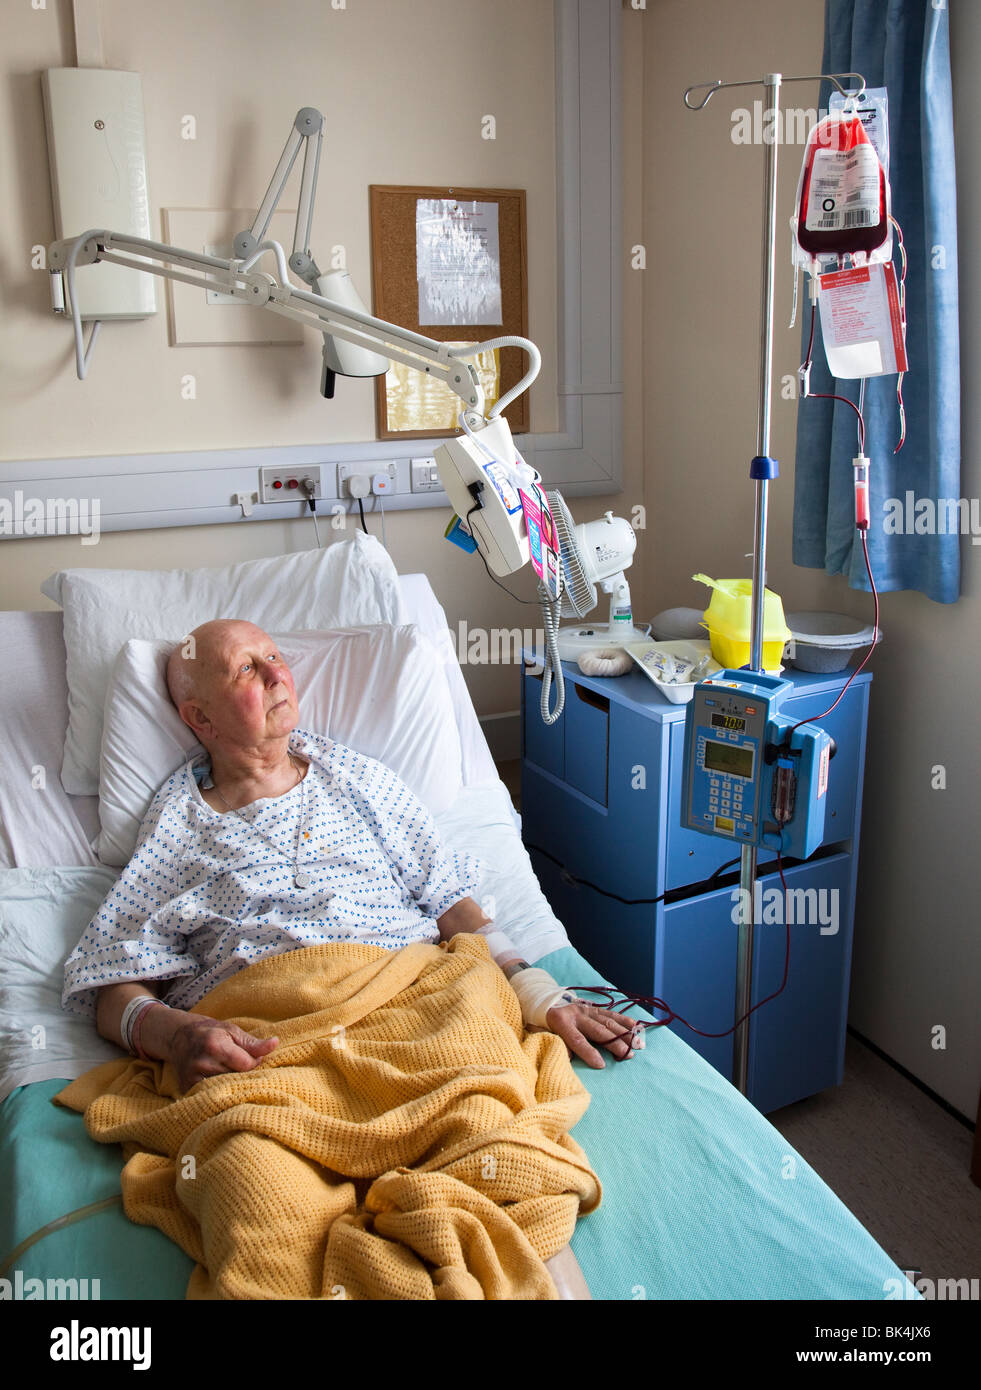 Patient in hospital bed watching television on swing arm while undergoing blood transfusion Wales UK - Stock Image